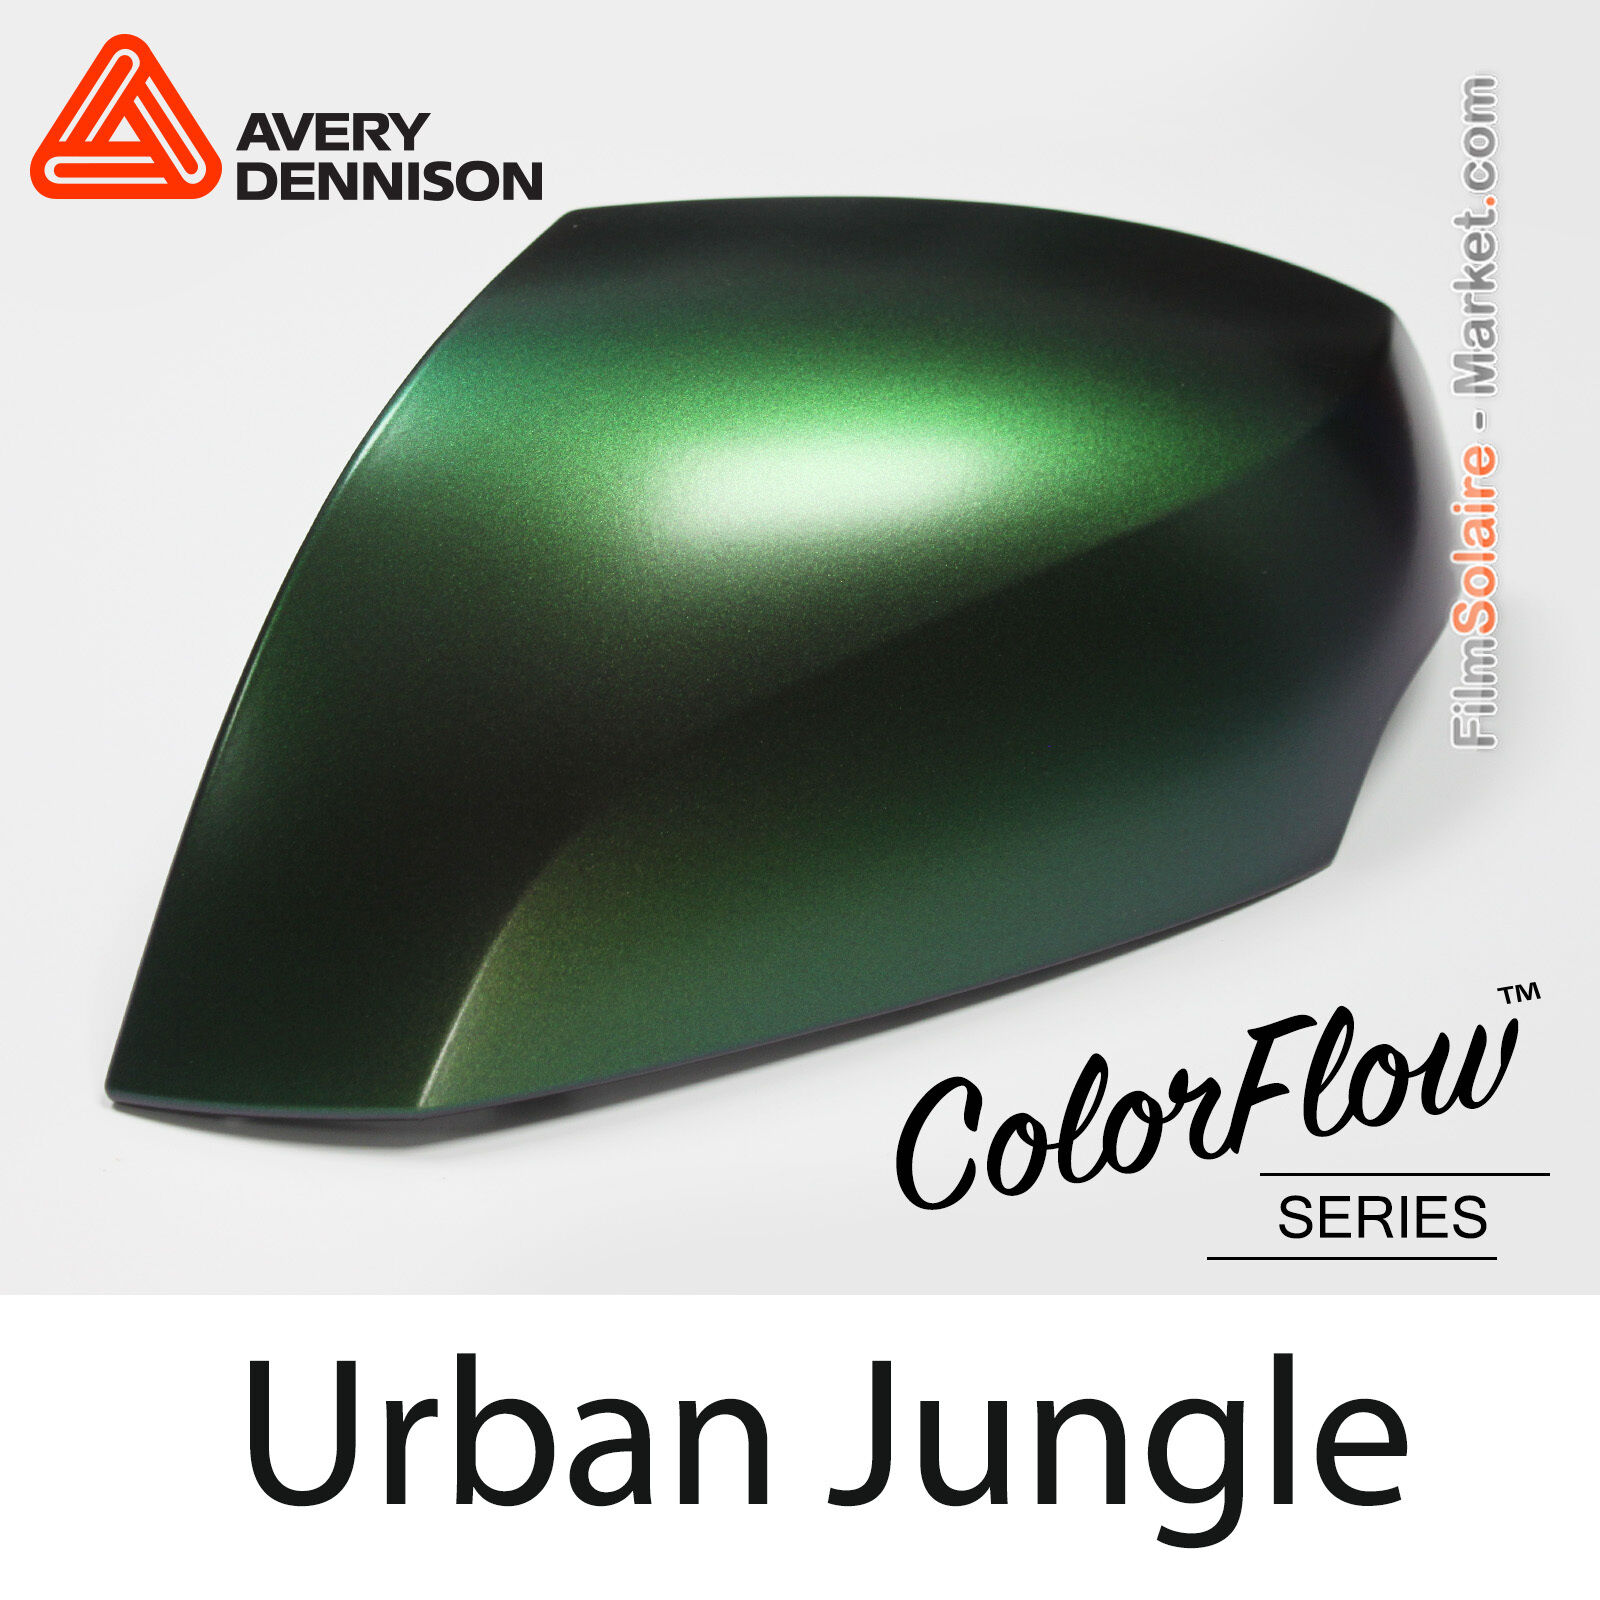 152x1000cm film colorflow urban jungle avery dennison for Avery paint protection film